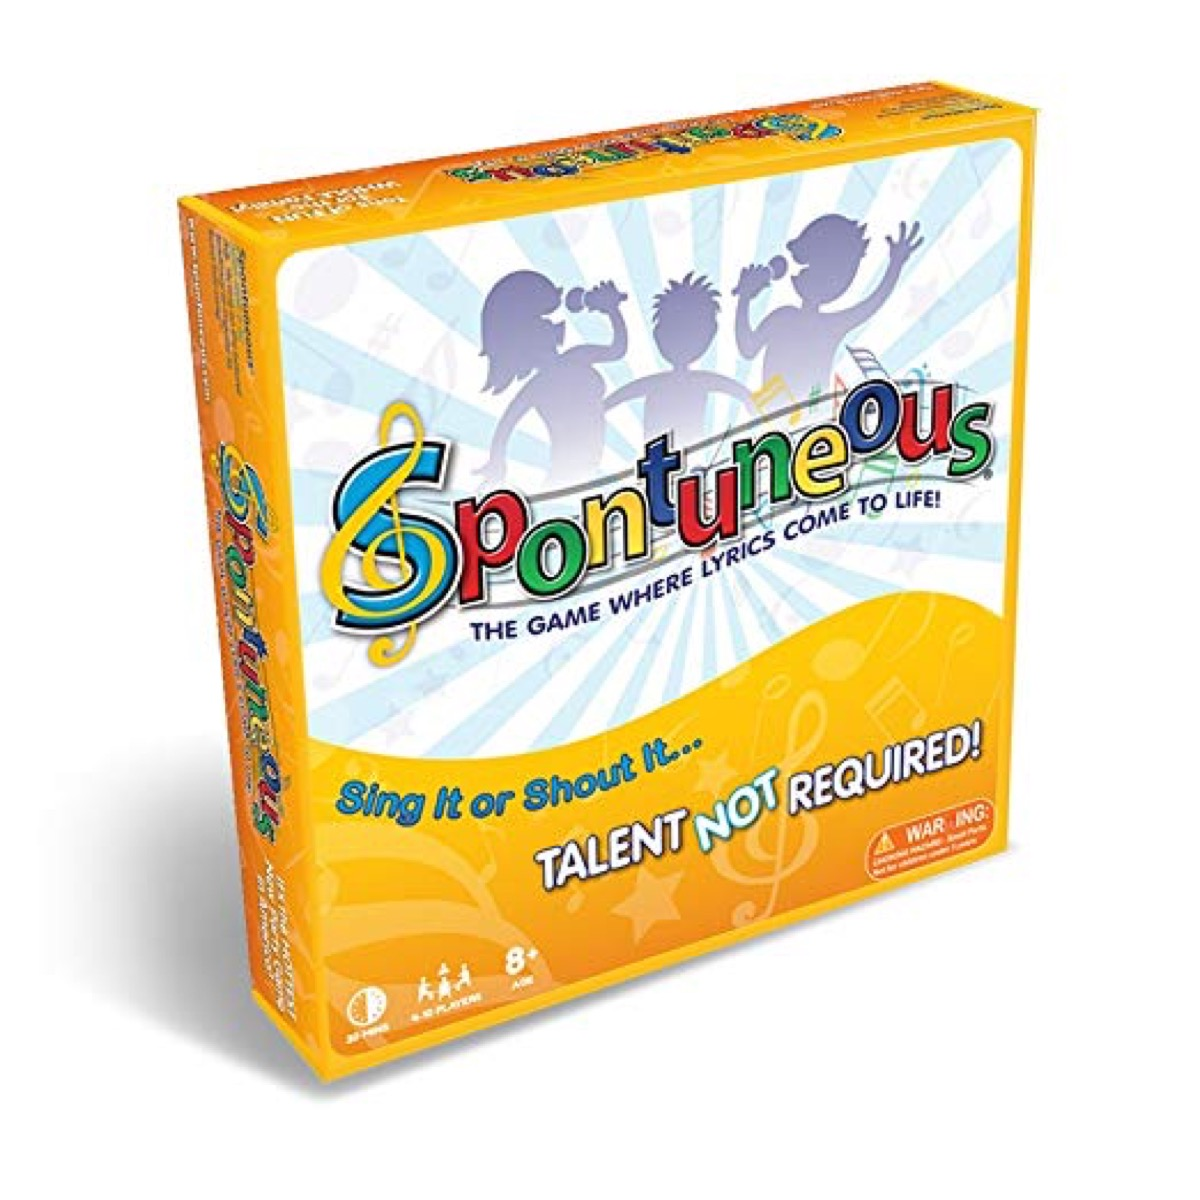 Spontuneous - The Song Game - Sing It or Shout It - Talent NOT Required (Best Family / Party Board Games for Kids, Teens, Adults - Boy & Girls Ages 8 & Up),Yellow from Amazon